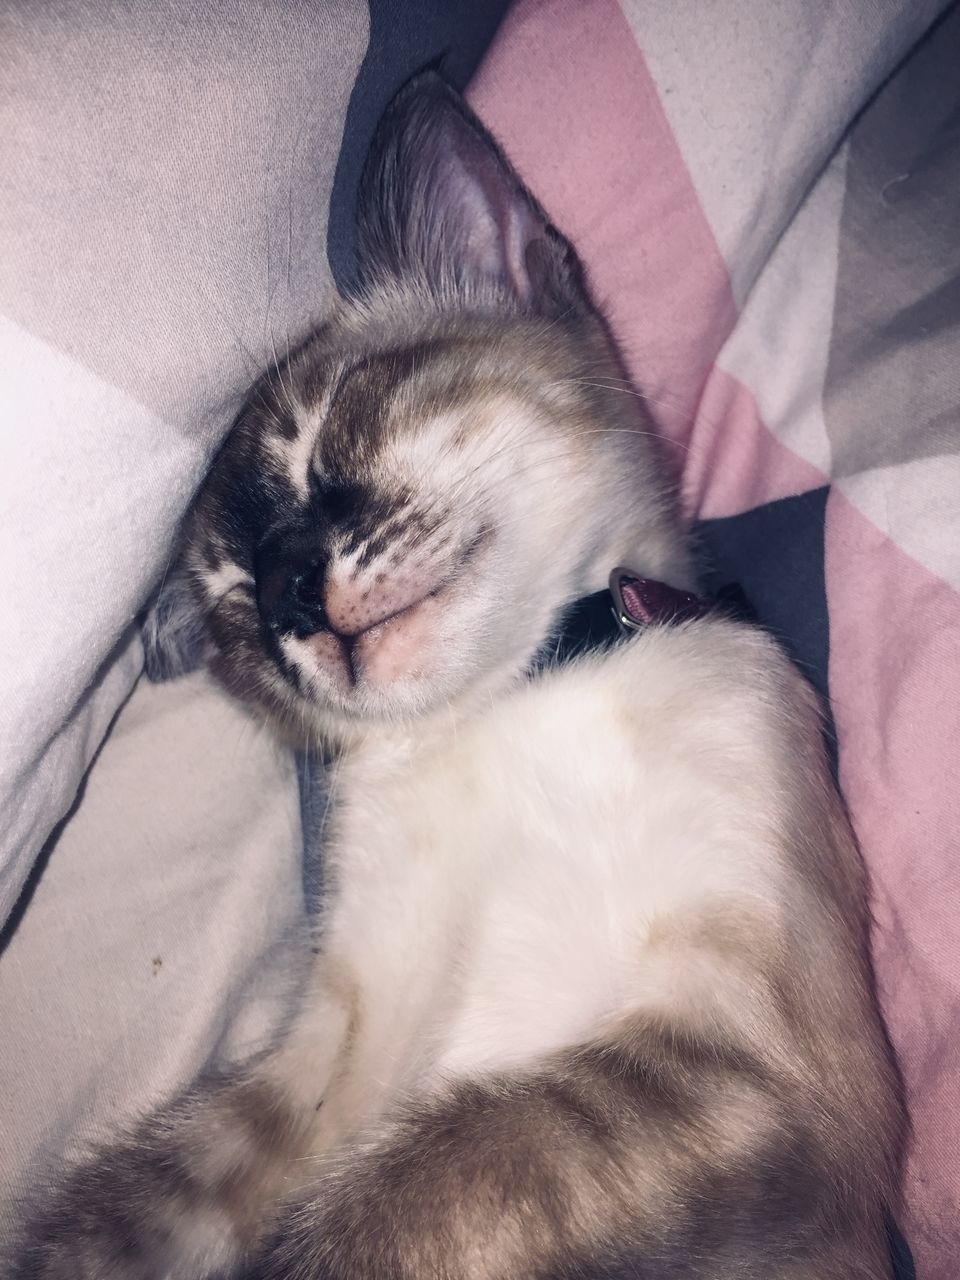 pets, domestic animals, domestic, mammal, one animal, animal themes, animal, vertebrate, relaxation, domestic cat, eyes closed, sleeping, resting, cat, furniture, indoors, feline, lying down, high angle view, one person, whisker, animal head, pet owner, napping